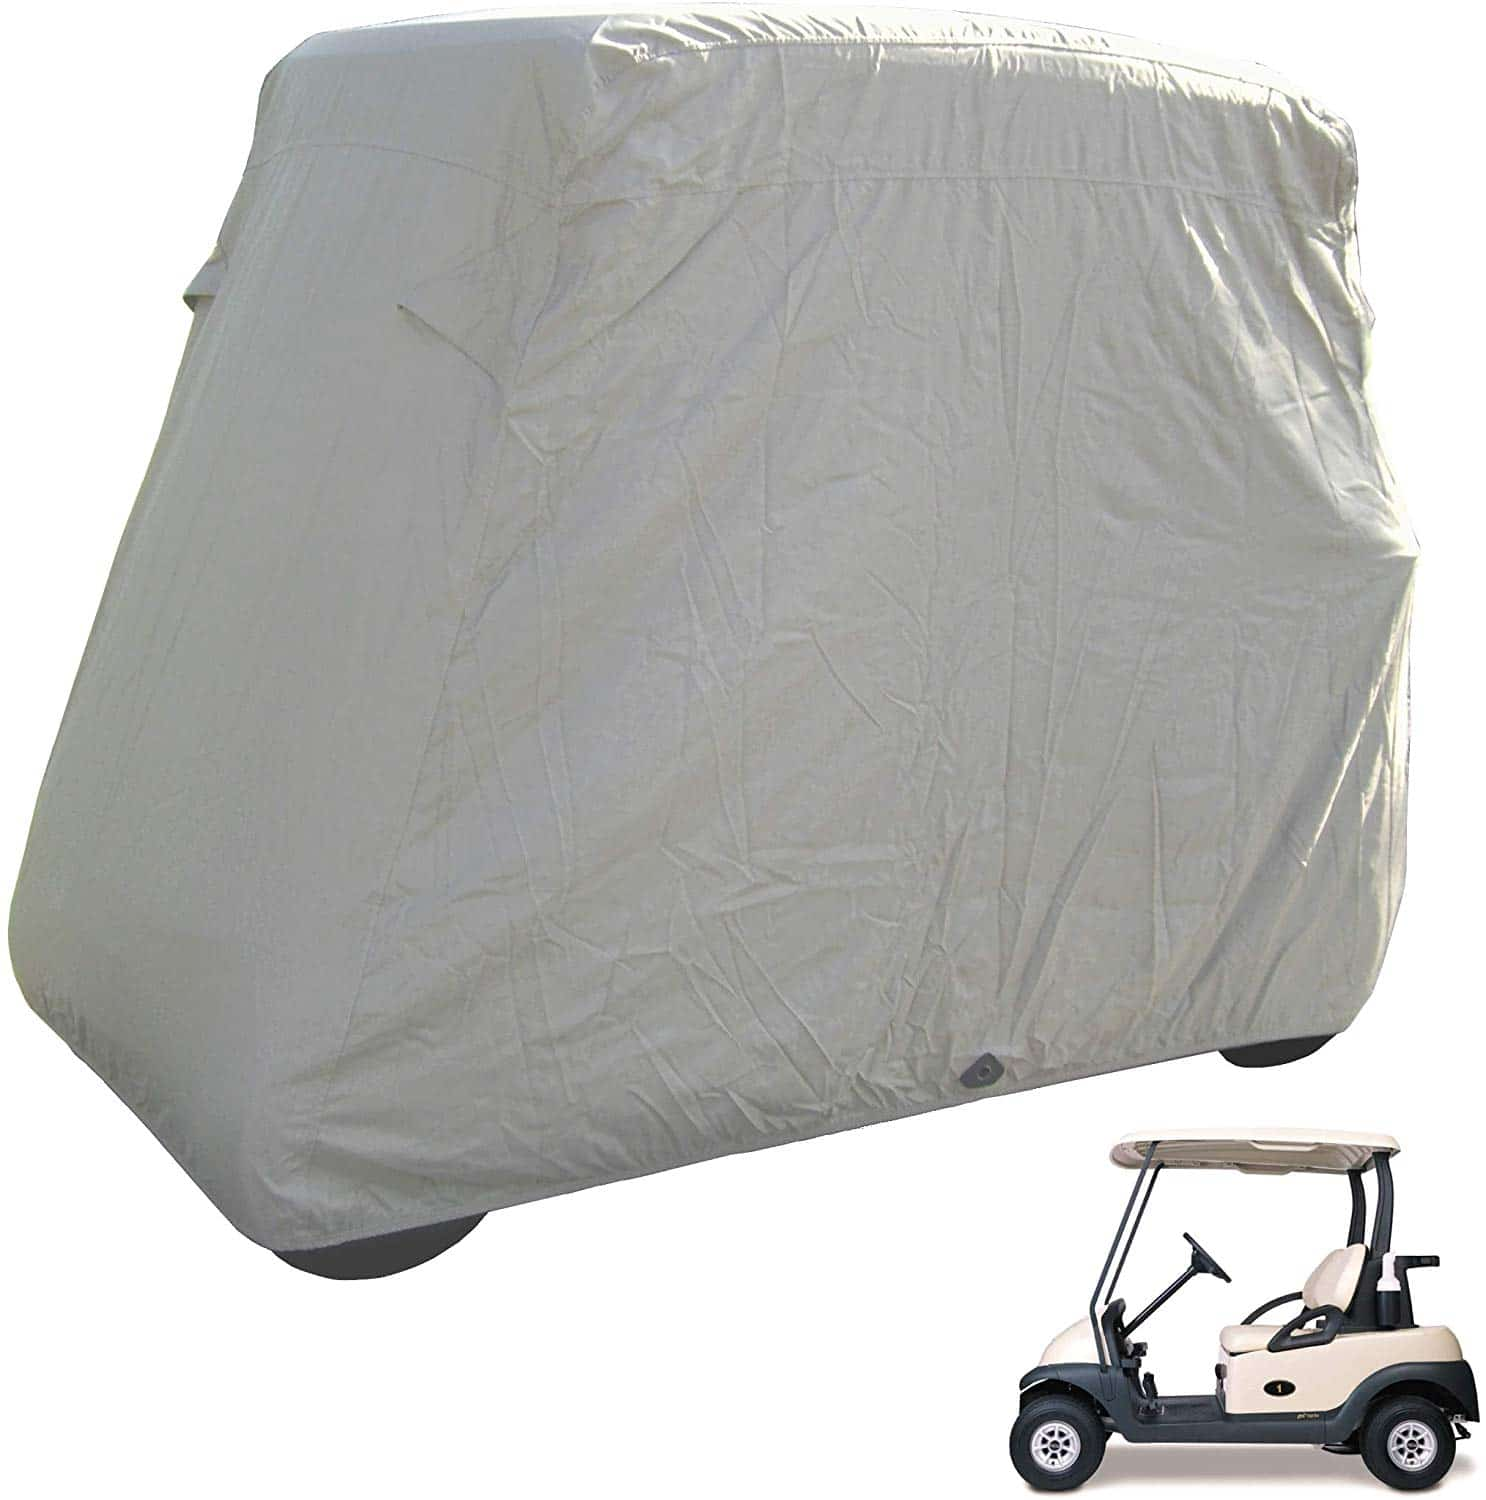 Deluxe 2-Seater Golf Cart Cover